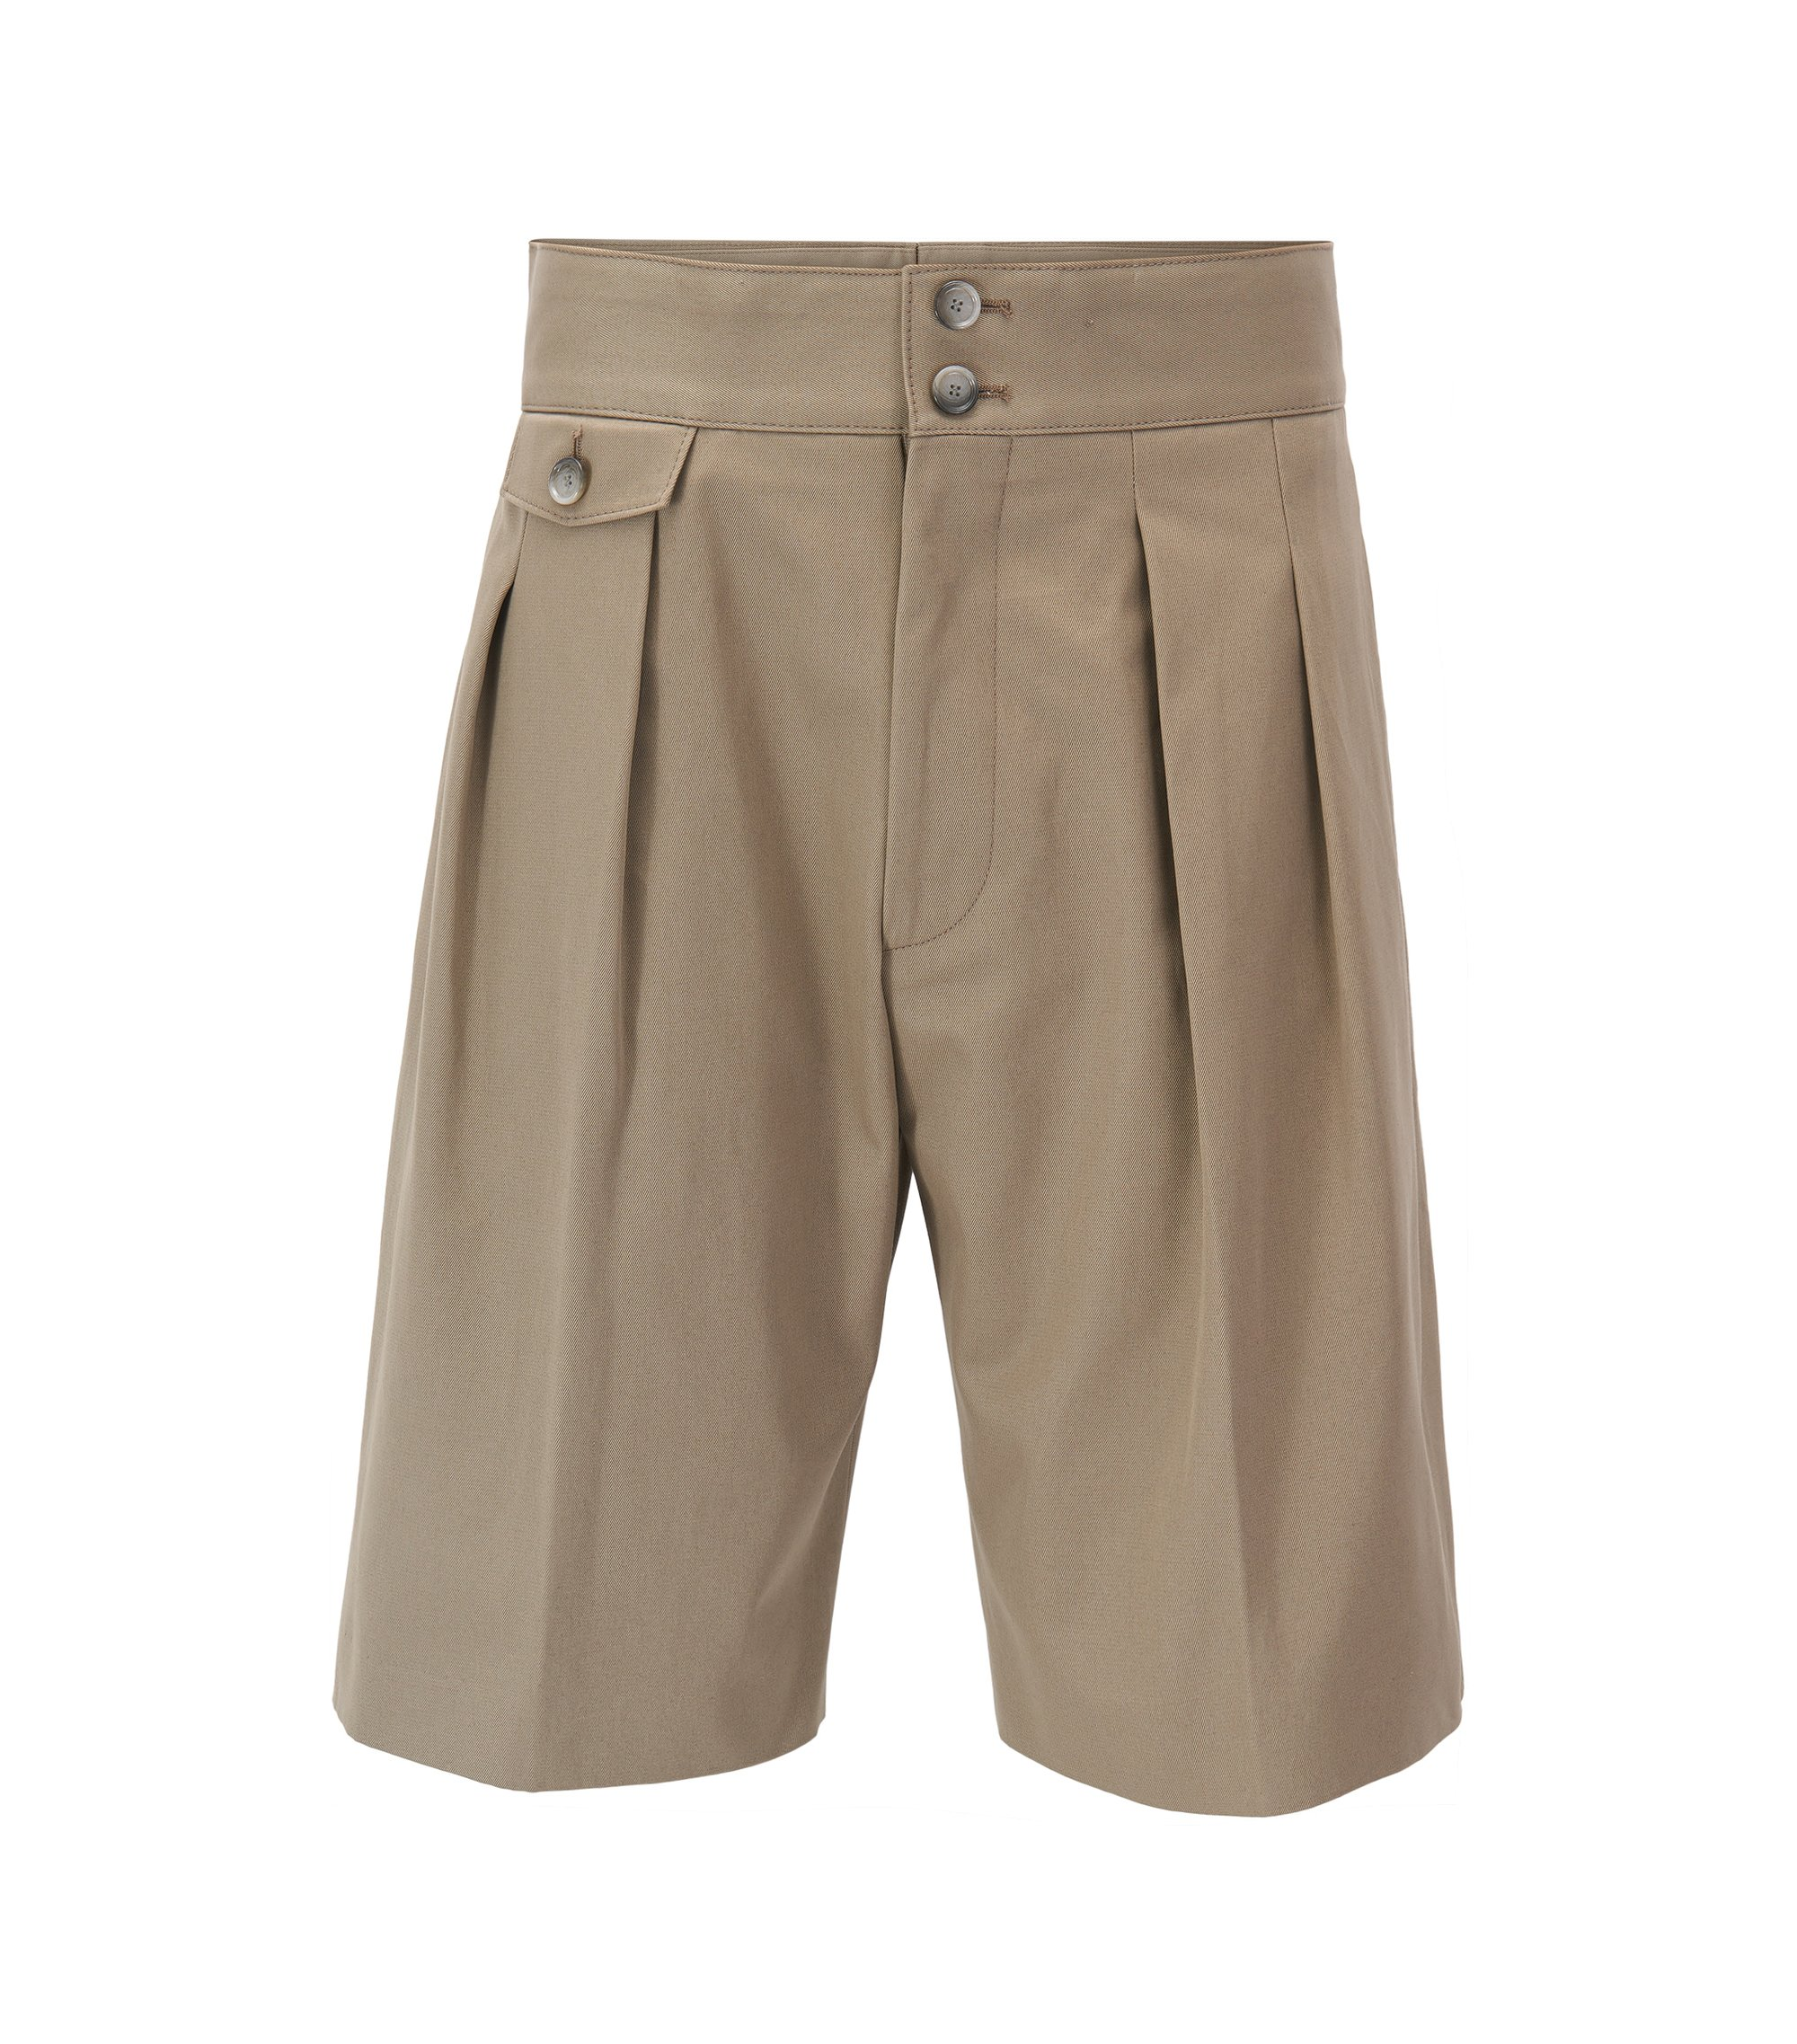 High Waisted Pleated Shorts | 'Anker', Open Beige